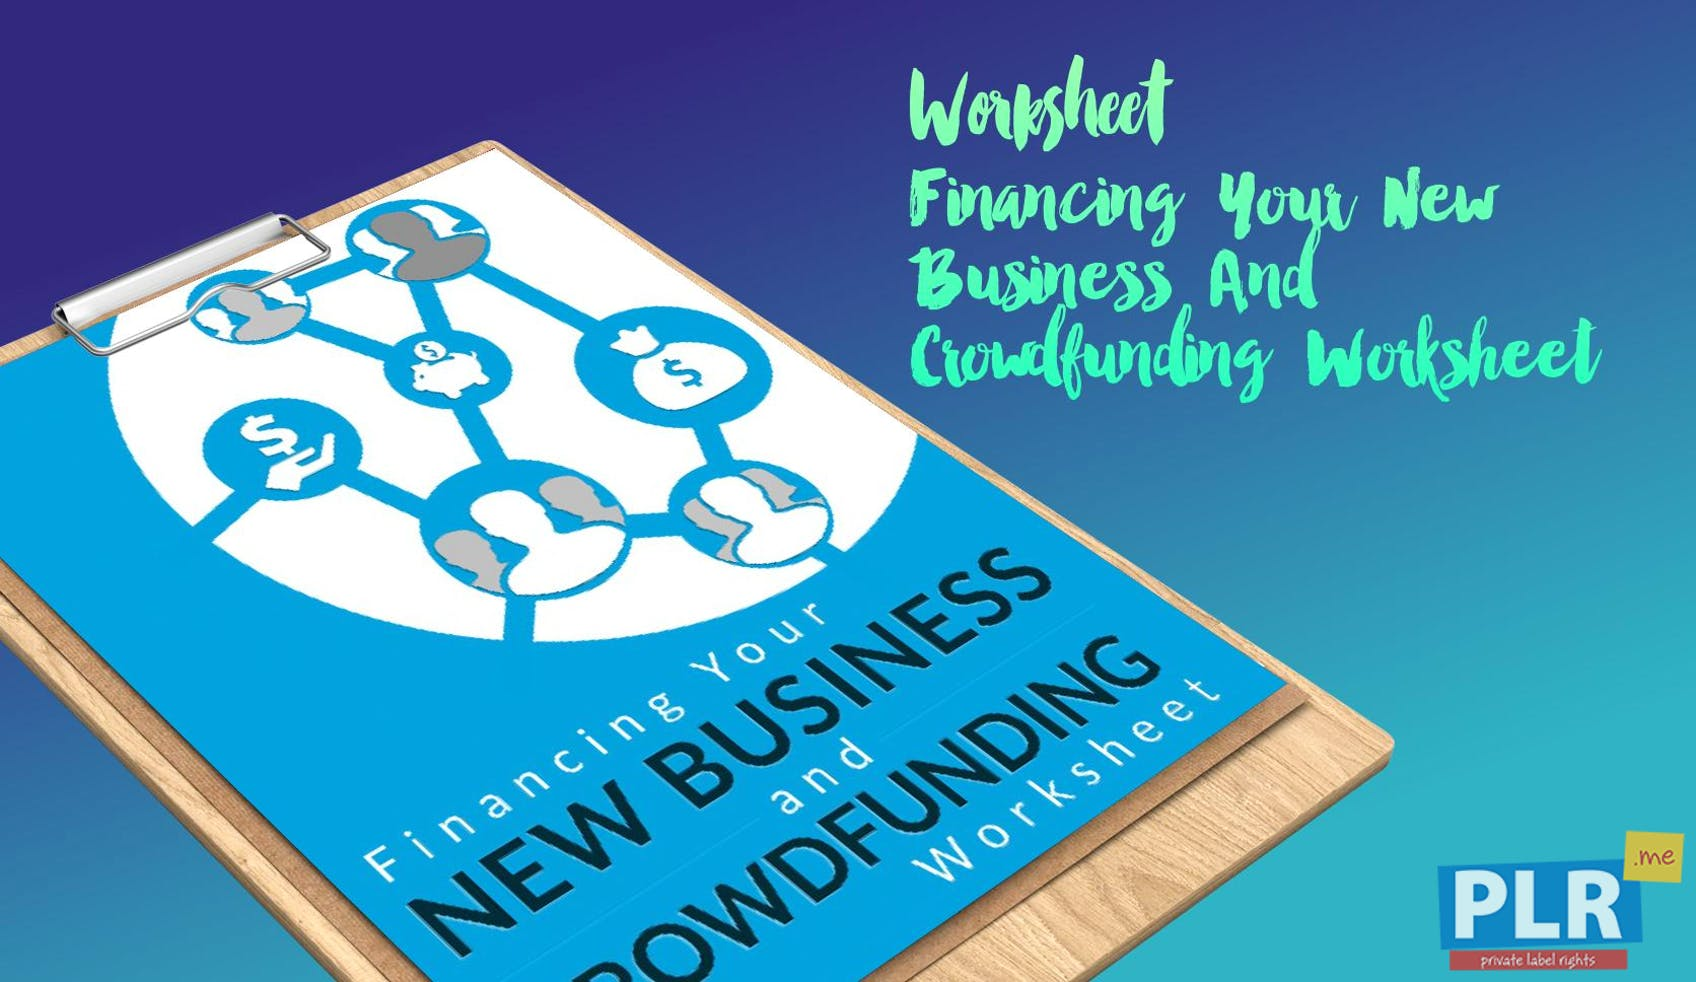 PLR Worksheets - Financing Your New Business And Crowdfunding ...